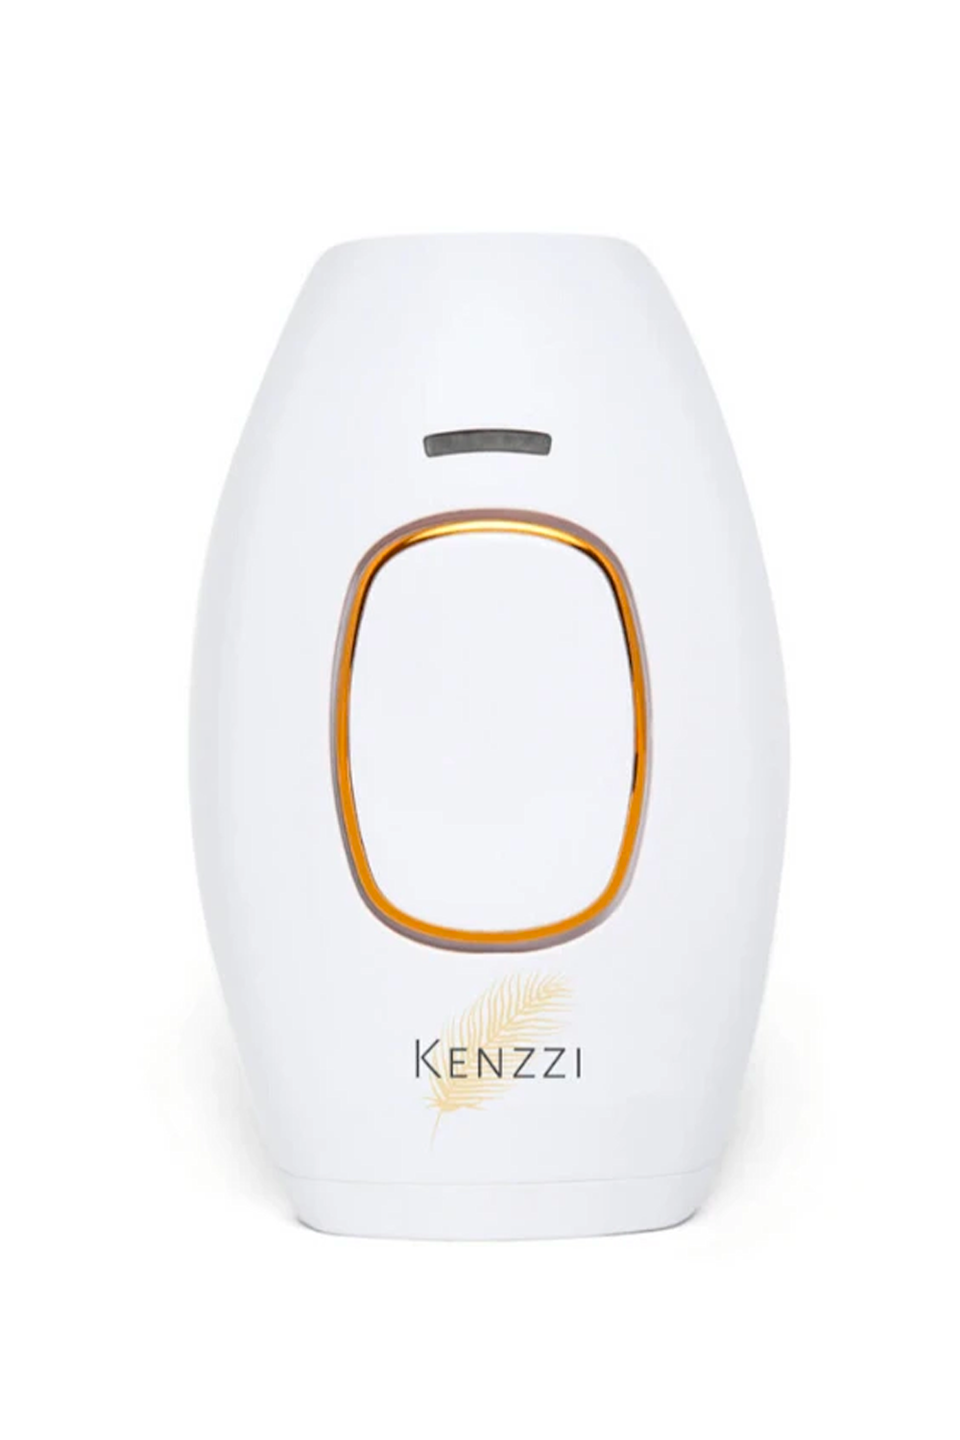 """<p><strong>kenzzi</strong></p><p>kenzzi.com</p><p><strong>$229.00</strong></p><p><a href=""""https://go.redirectingat.com?id=74968X1596630&url=https%3A%2F%2Fkenzzi.com%2Fproducts%2Fkenzzi-ipl-hair-removal-handset&sref=https%3A%2F%2Fwww.cosmopolitan.com%2Fstyle-beauty%2Fbeauty%2Fg30112097%2Fbest-laser-hair-removal-at-home%2F"""" rel=""""nofollow noopener"""" target=""""_blank"""" data-ylk=""""slk:Shop Now"""" class=""""link rapid-noclick-resp"""">Shop Now</a></p><p>Don't be fooled by the smaller handheld size—this at-home device is equipped for hair removal on your legs, arms, and even your <a href=""""https://www.cosmopolitan.com/style-beauty/beauty/g32082297/best-bikini-trimmers-razors/"""" rel=""""nofollow noopener"""" target=""""_blank"""" data-ylk=""""slk:bikini line"""" class=""""link rapid-noclick-resp"""">bikini line</a>. It comes with <strong>five power settings so you can customize your treatments</strong> (I'd recommend starting with the lowest setting and working your way up from there) and results start to kick in after three to four weeks.</p>"""